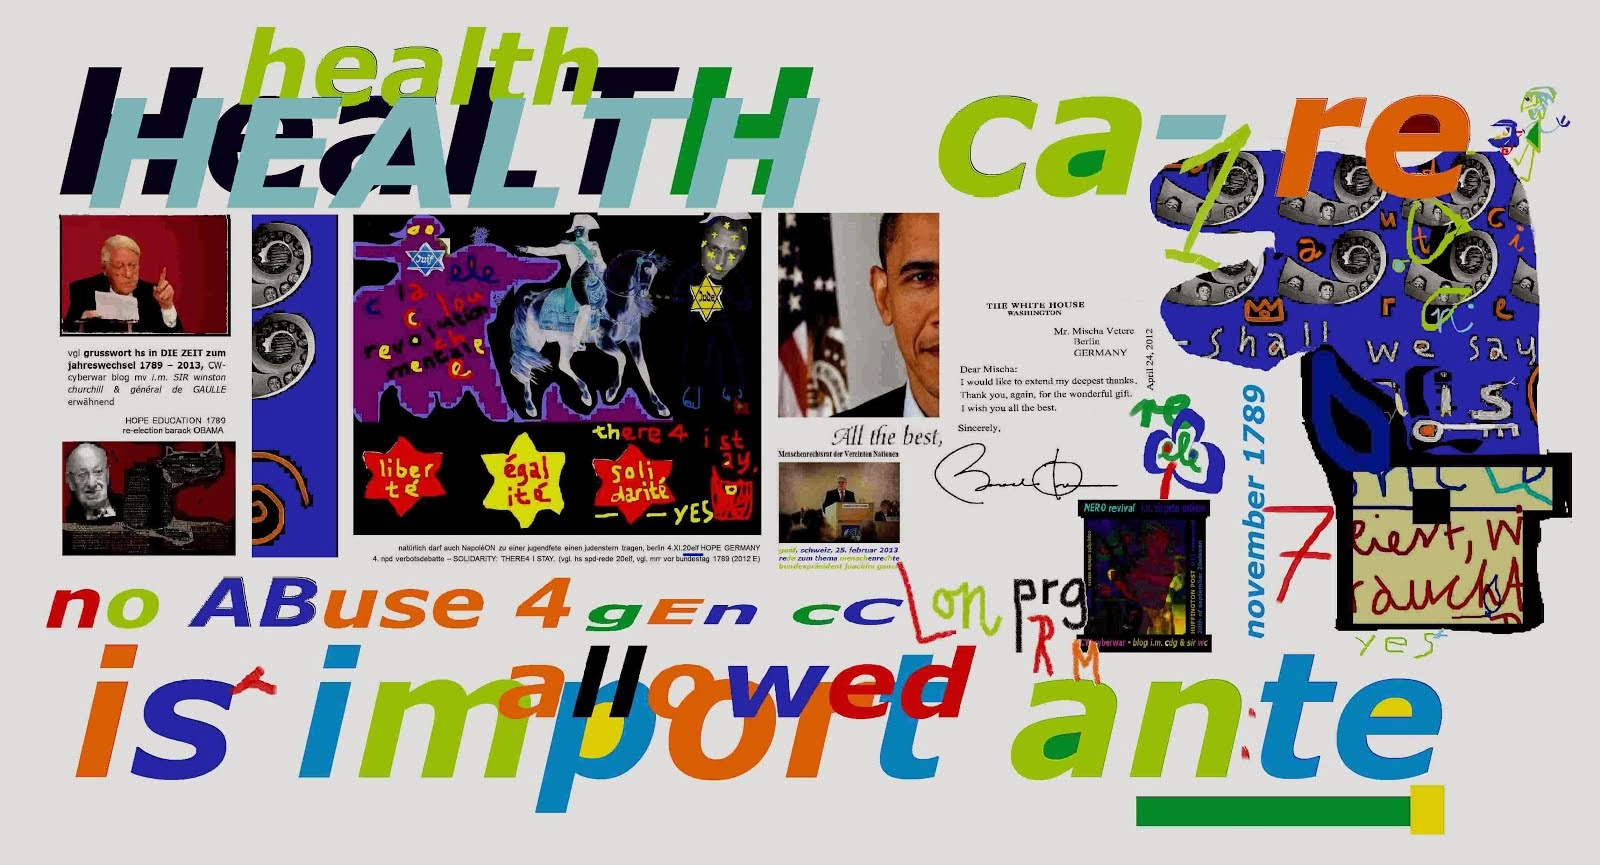 barack obama bill clinton HEALTH CARE gen program aids weapON NO GENUCIDE subPIRME george w bush